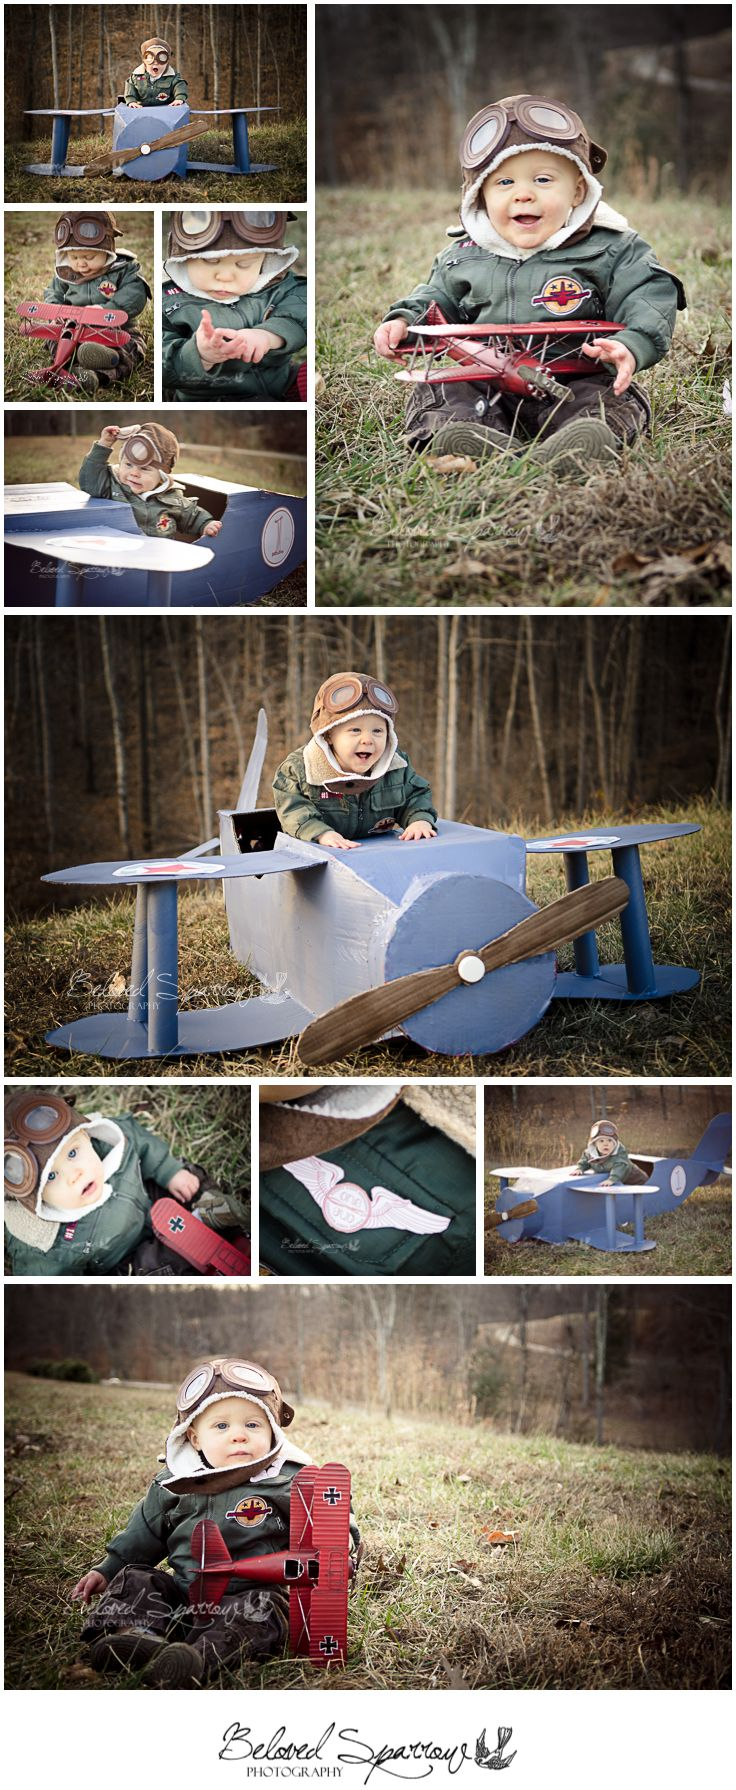 One Year Old Boy Portrait Session | One Year Old Portrait Ideas | Vintage Airplane Birthday Portrait | Baby Aviator Pilot Portraits | Cardboard Airplane Prop | Atlanta Professional Photographer | First birthday theme ideas  www.belovedsparrow.com